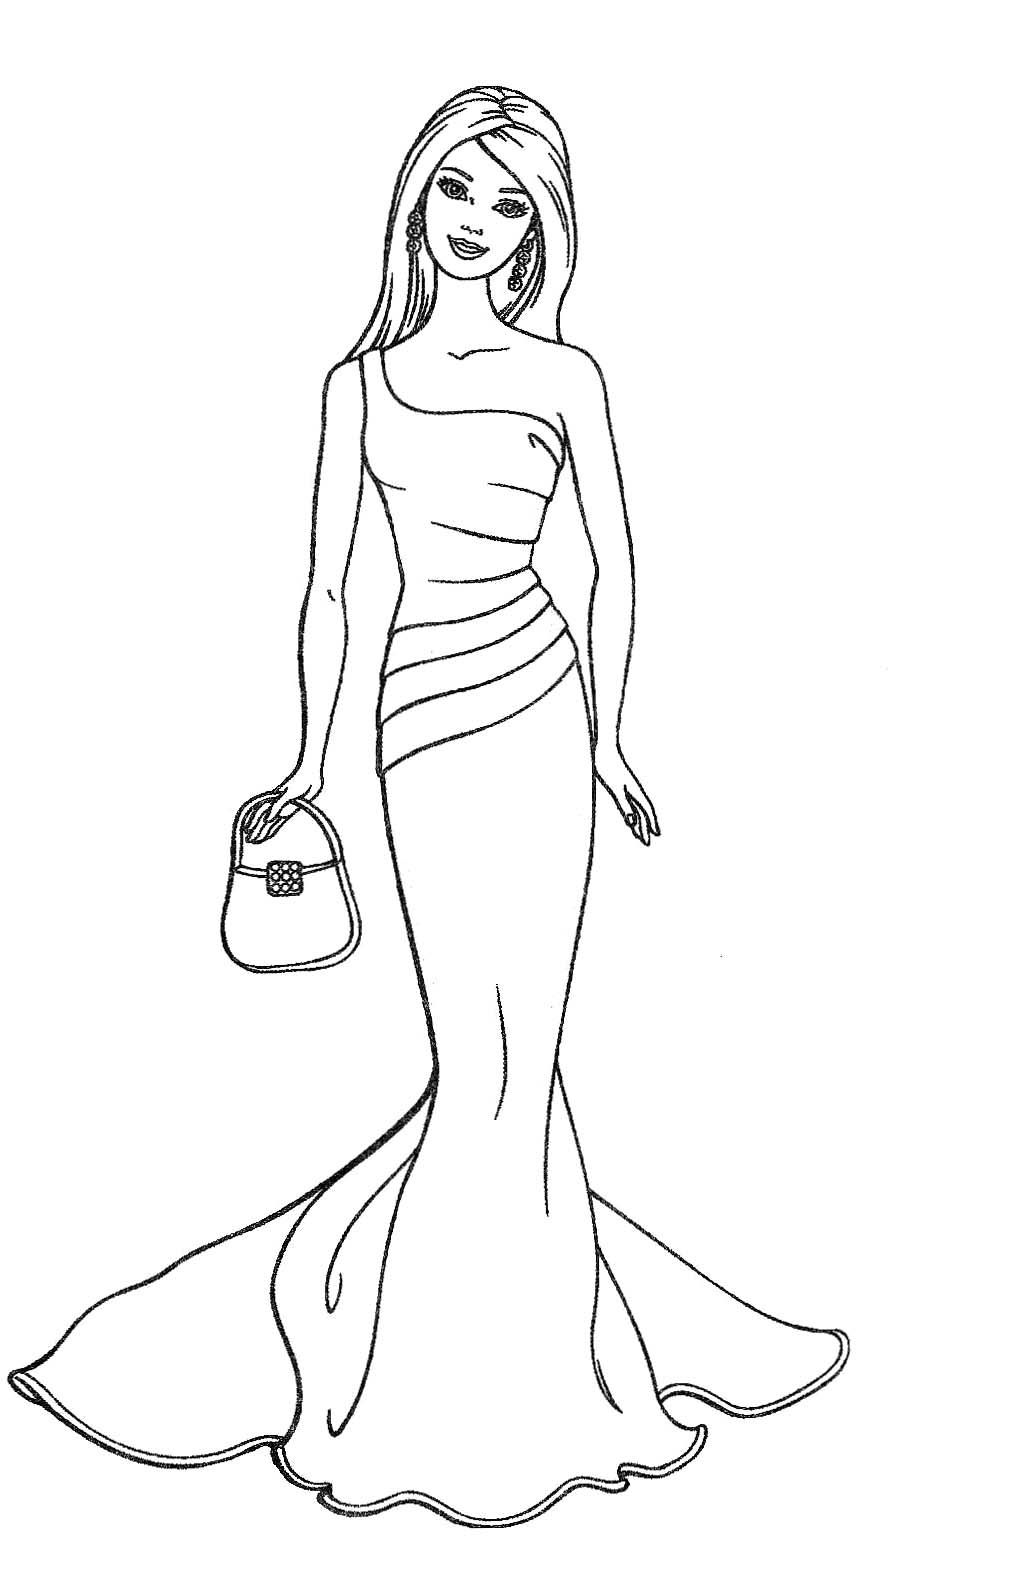 Photos drawing images of. Barbie clipart easy